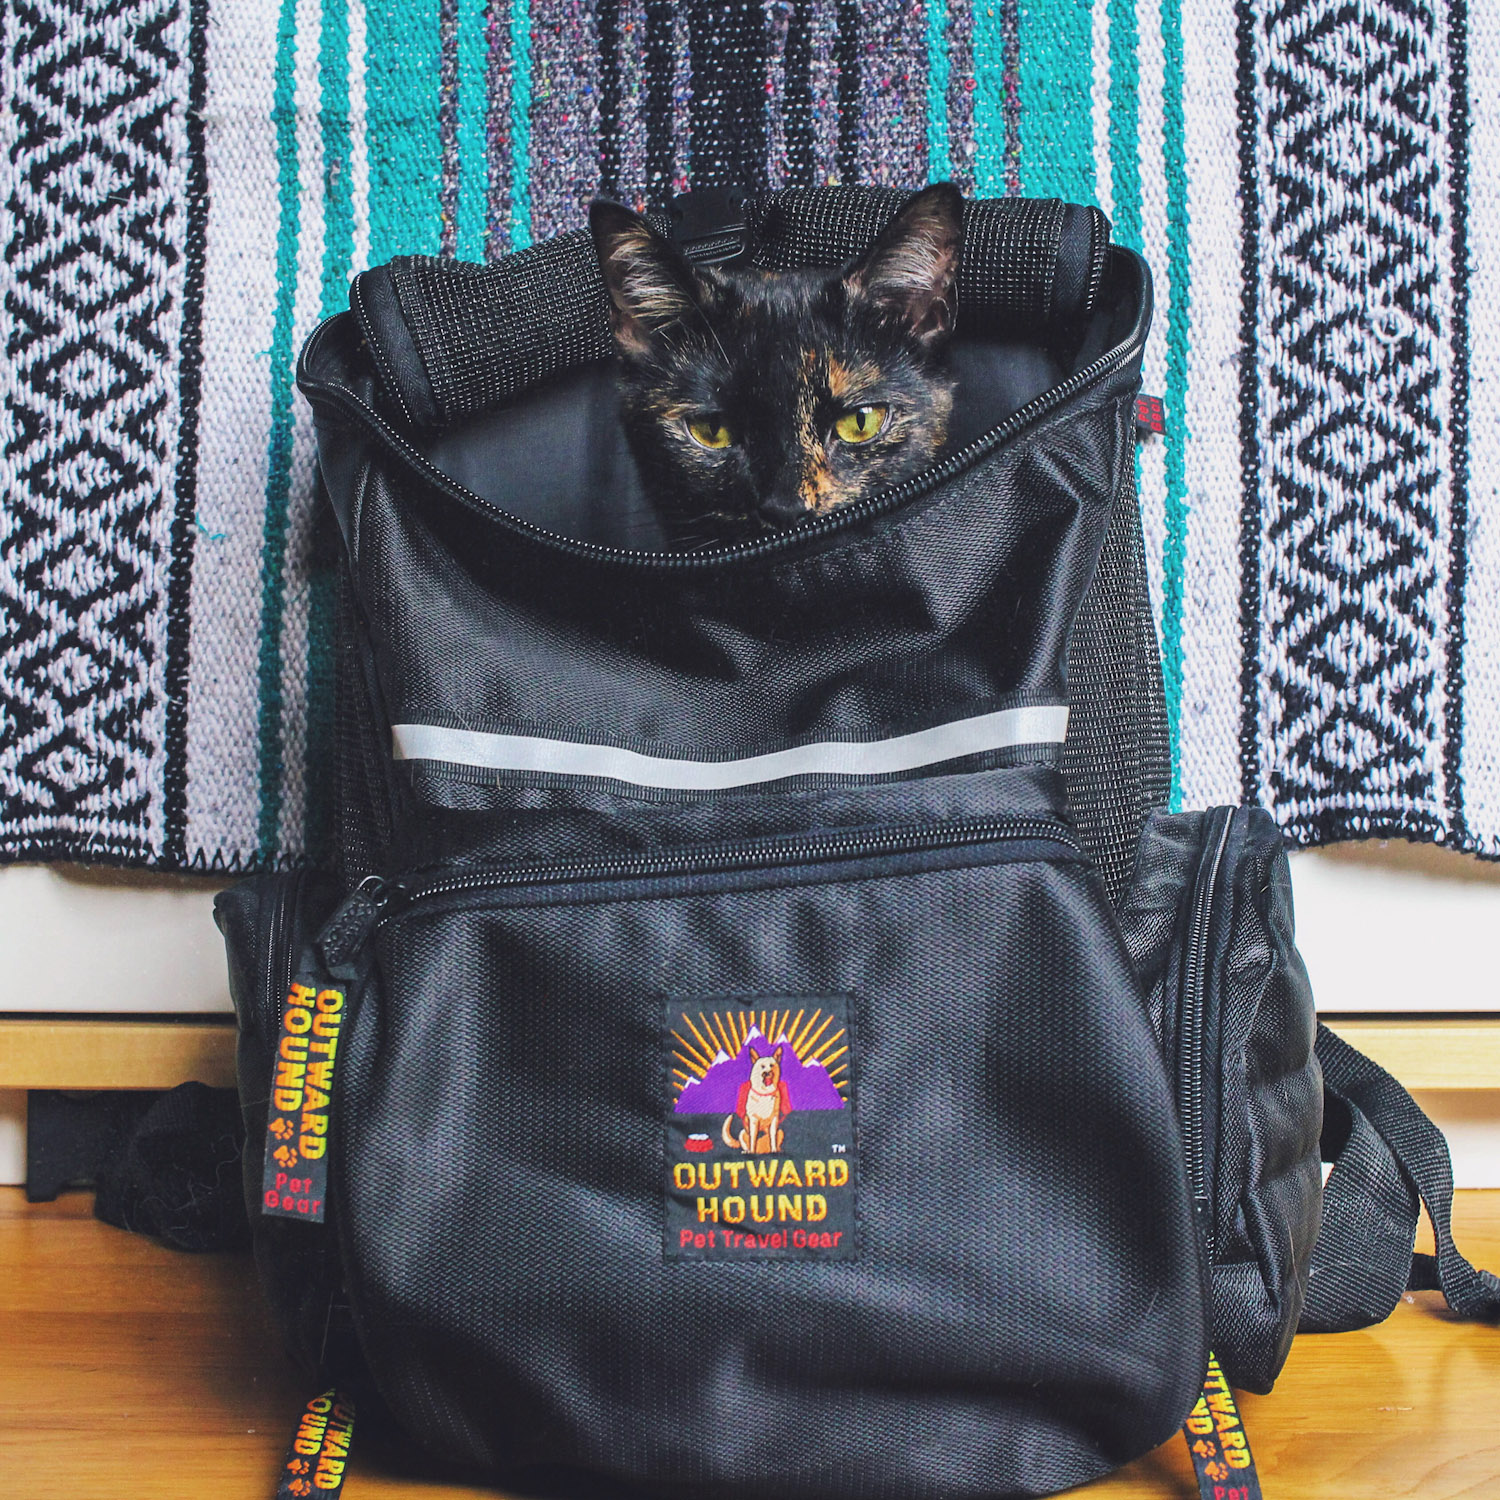 What backpacks are best for cats? – Adventure Cats